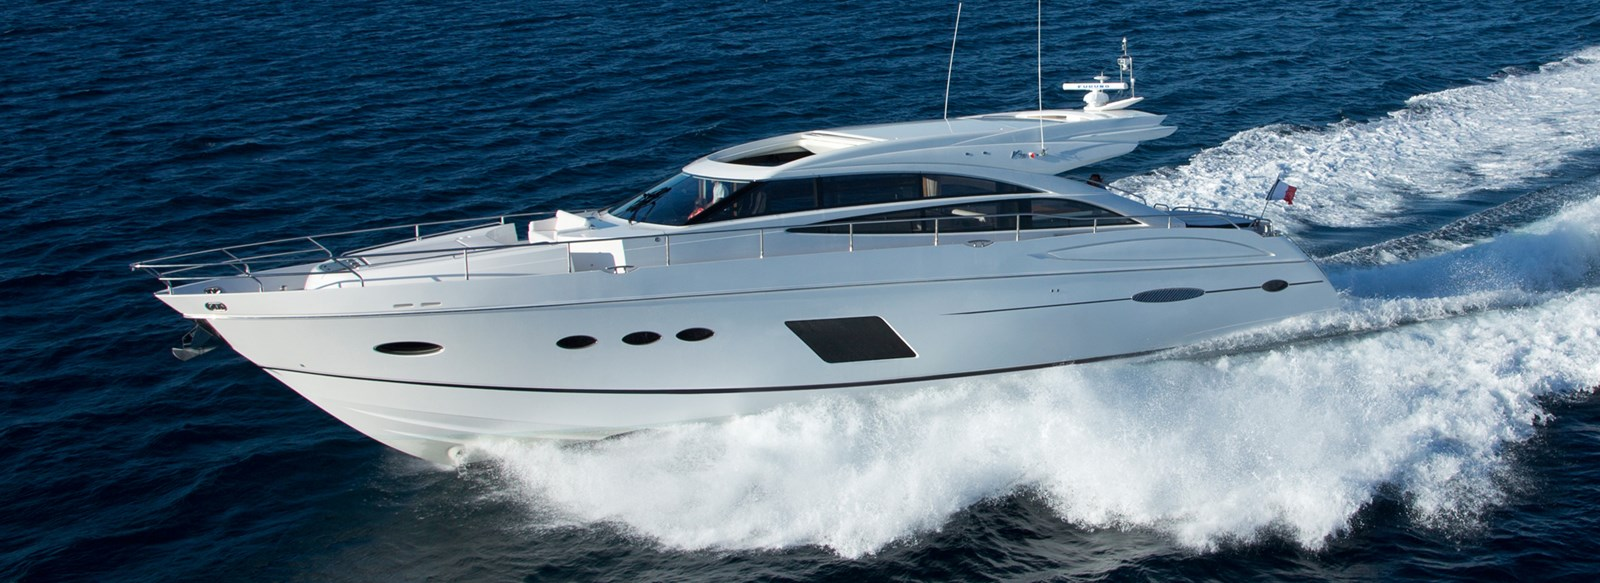 New Princess V72 Express Yachts For Sale